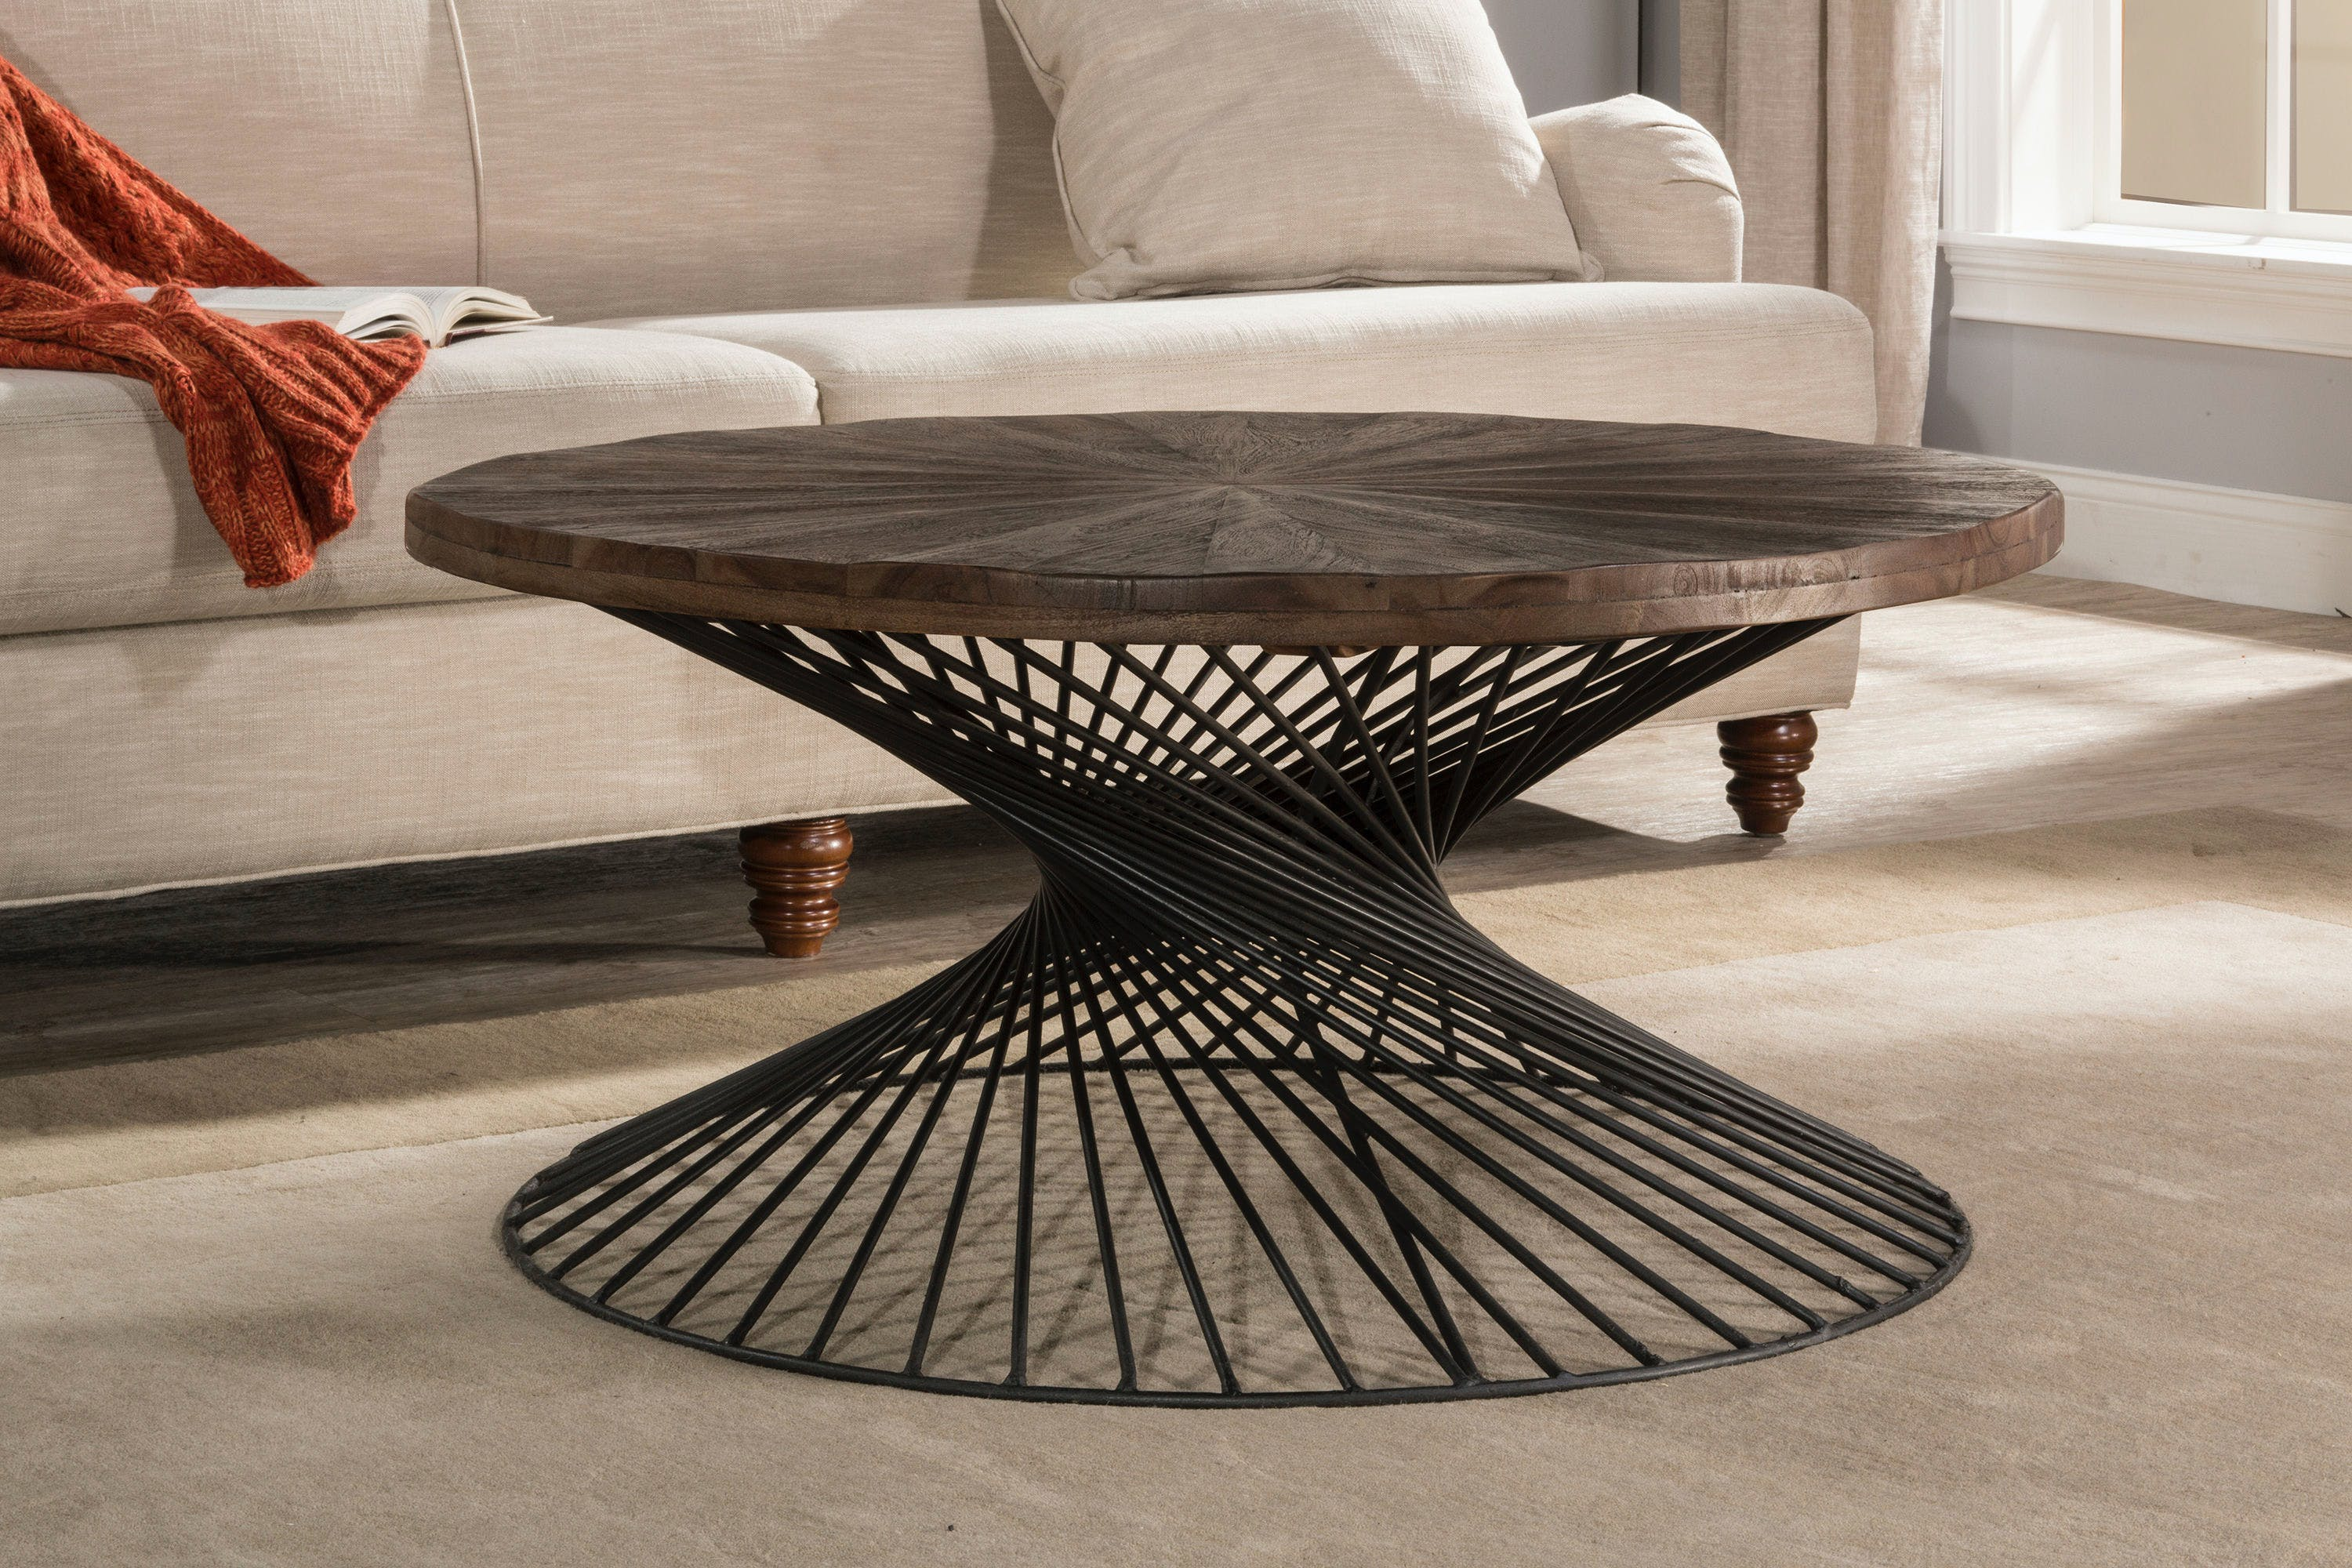 Picture of: Hillsdale Furniture Living Room Kanister Round Coffee Table 4471 880 Turner Furniture Company